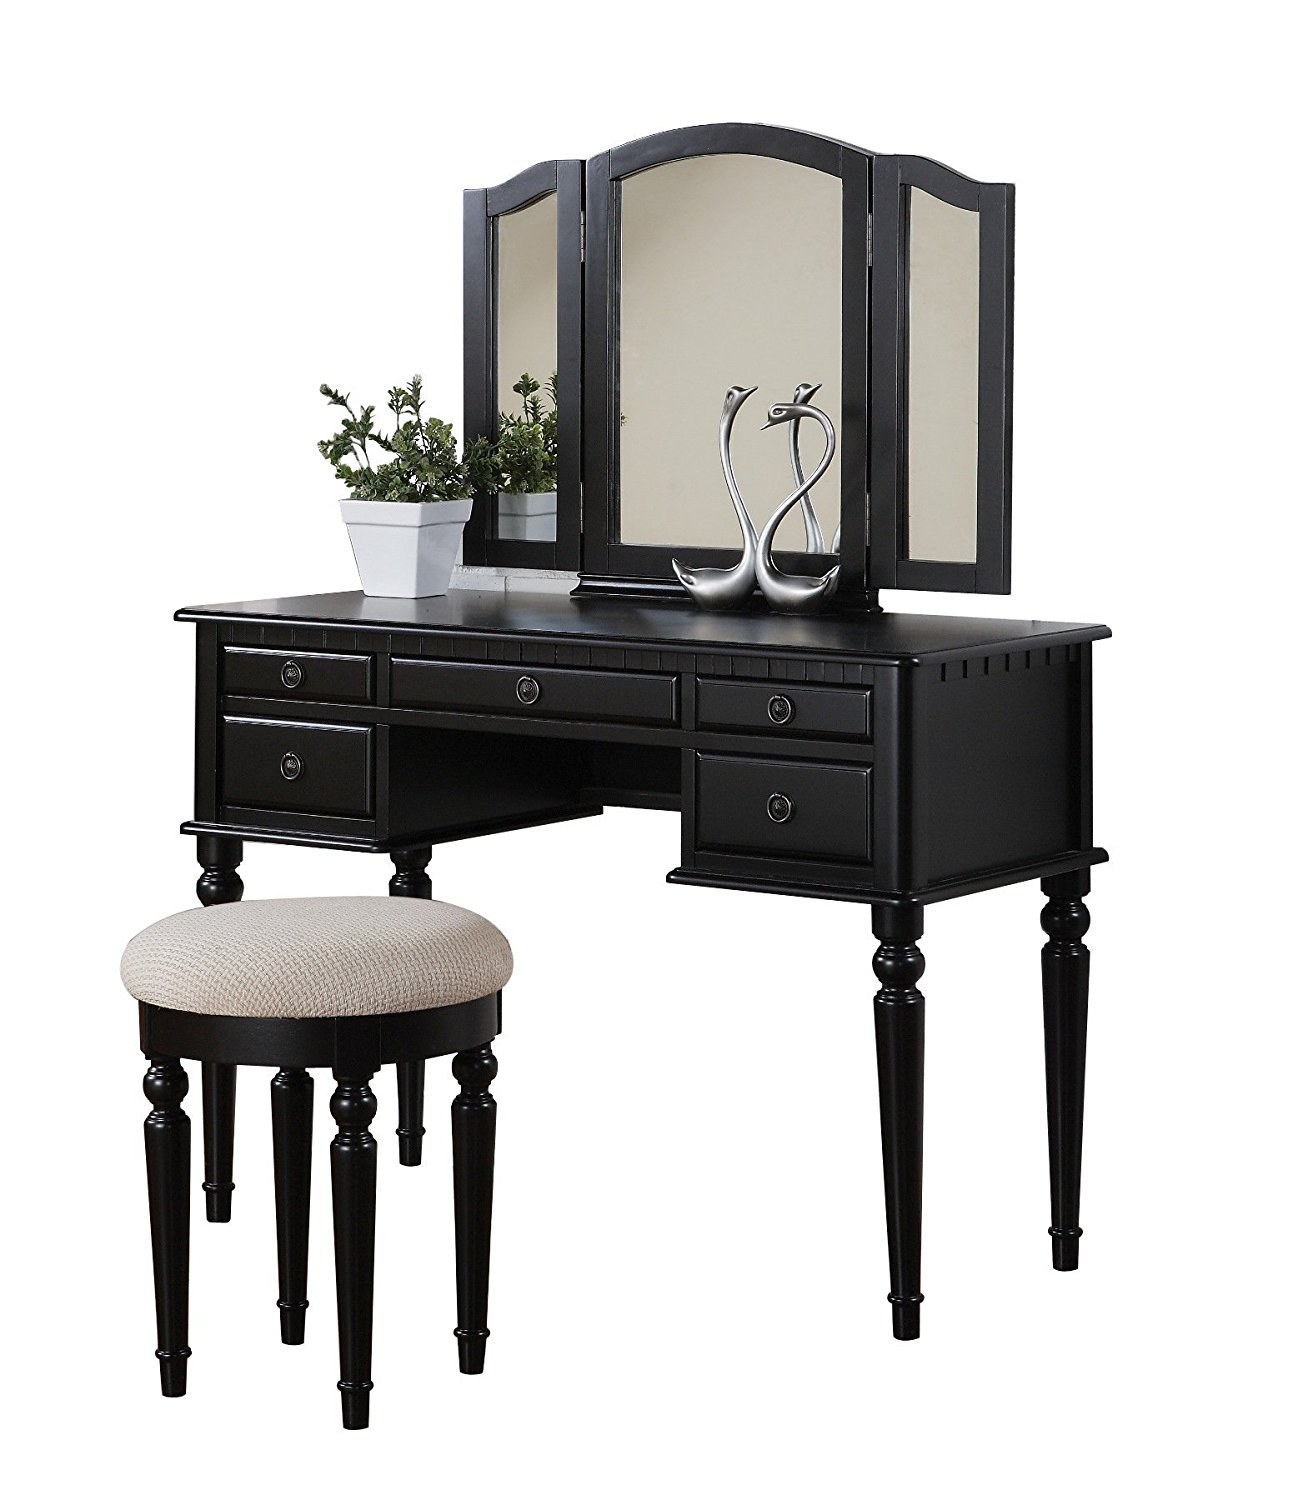 Vanity Light Mirror Table : Makeup Vanity Table With Lighted Mirror - Decor IdeasDecor Ideas